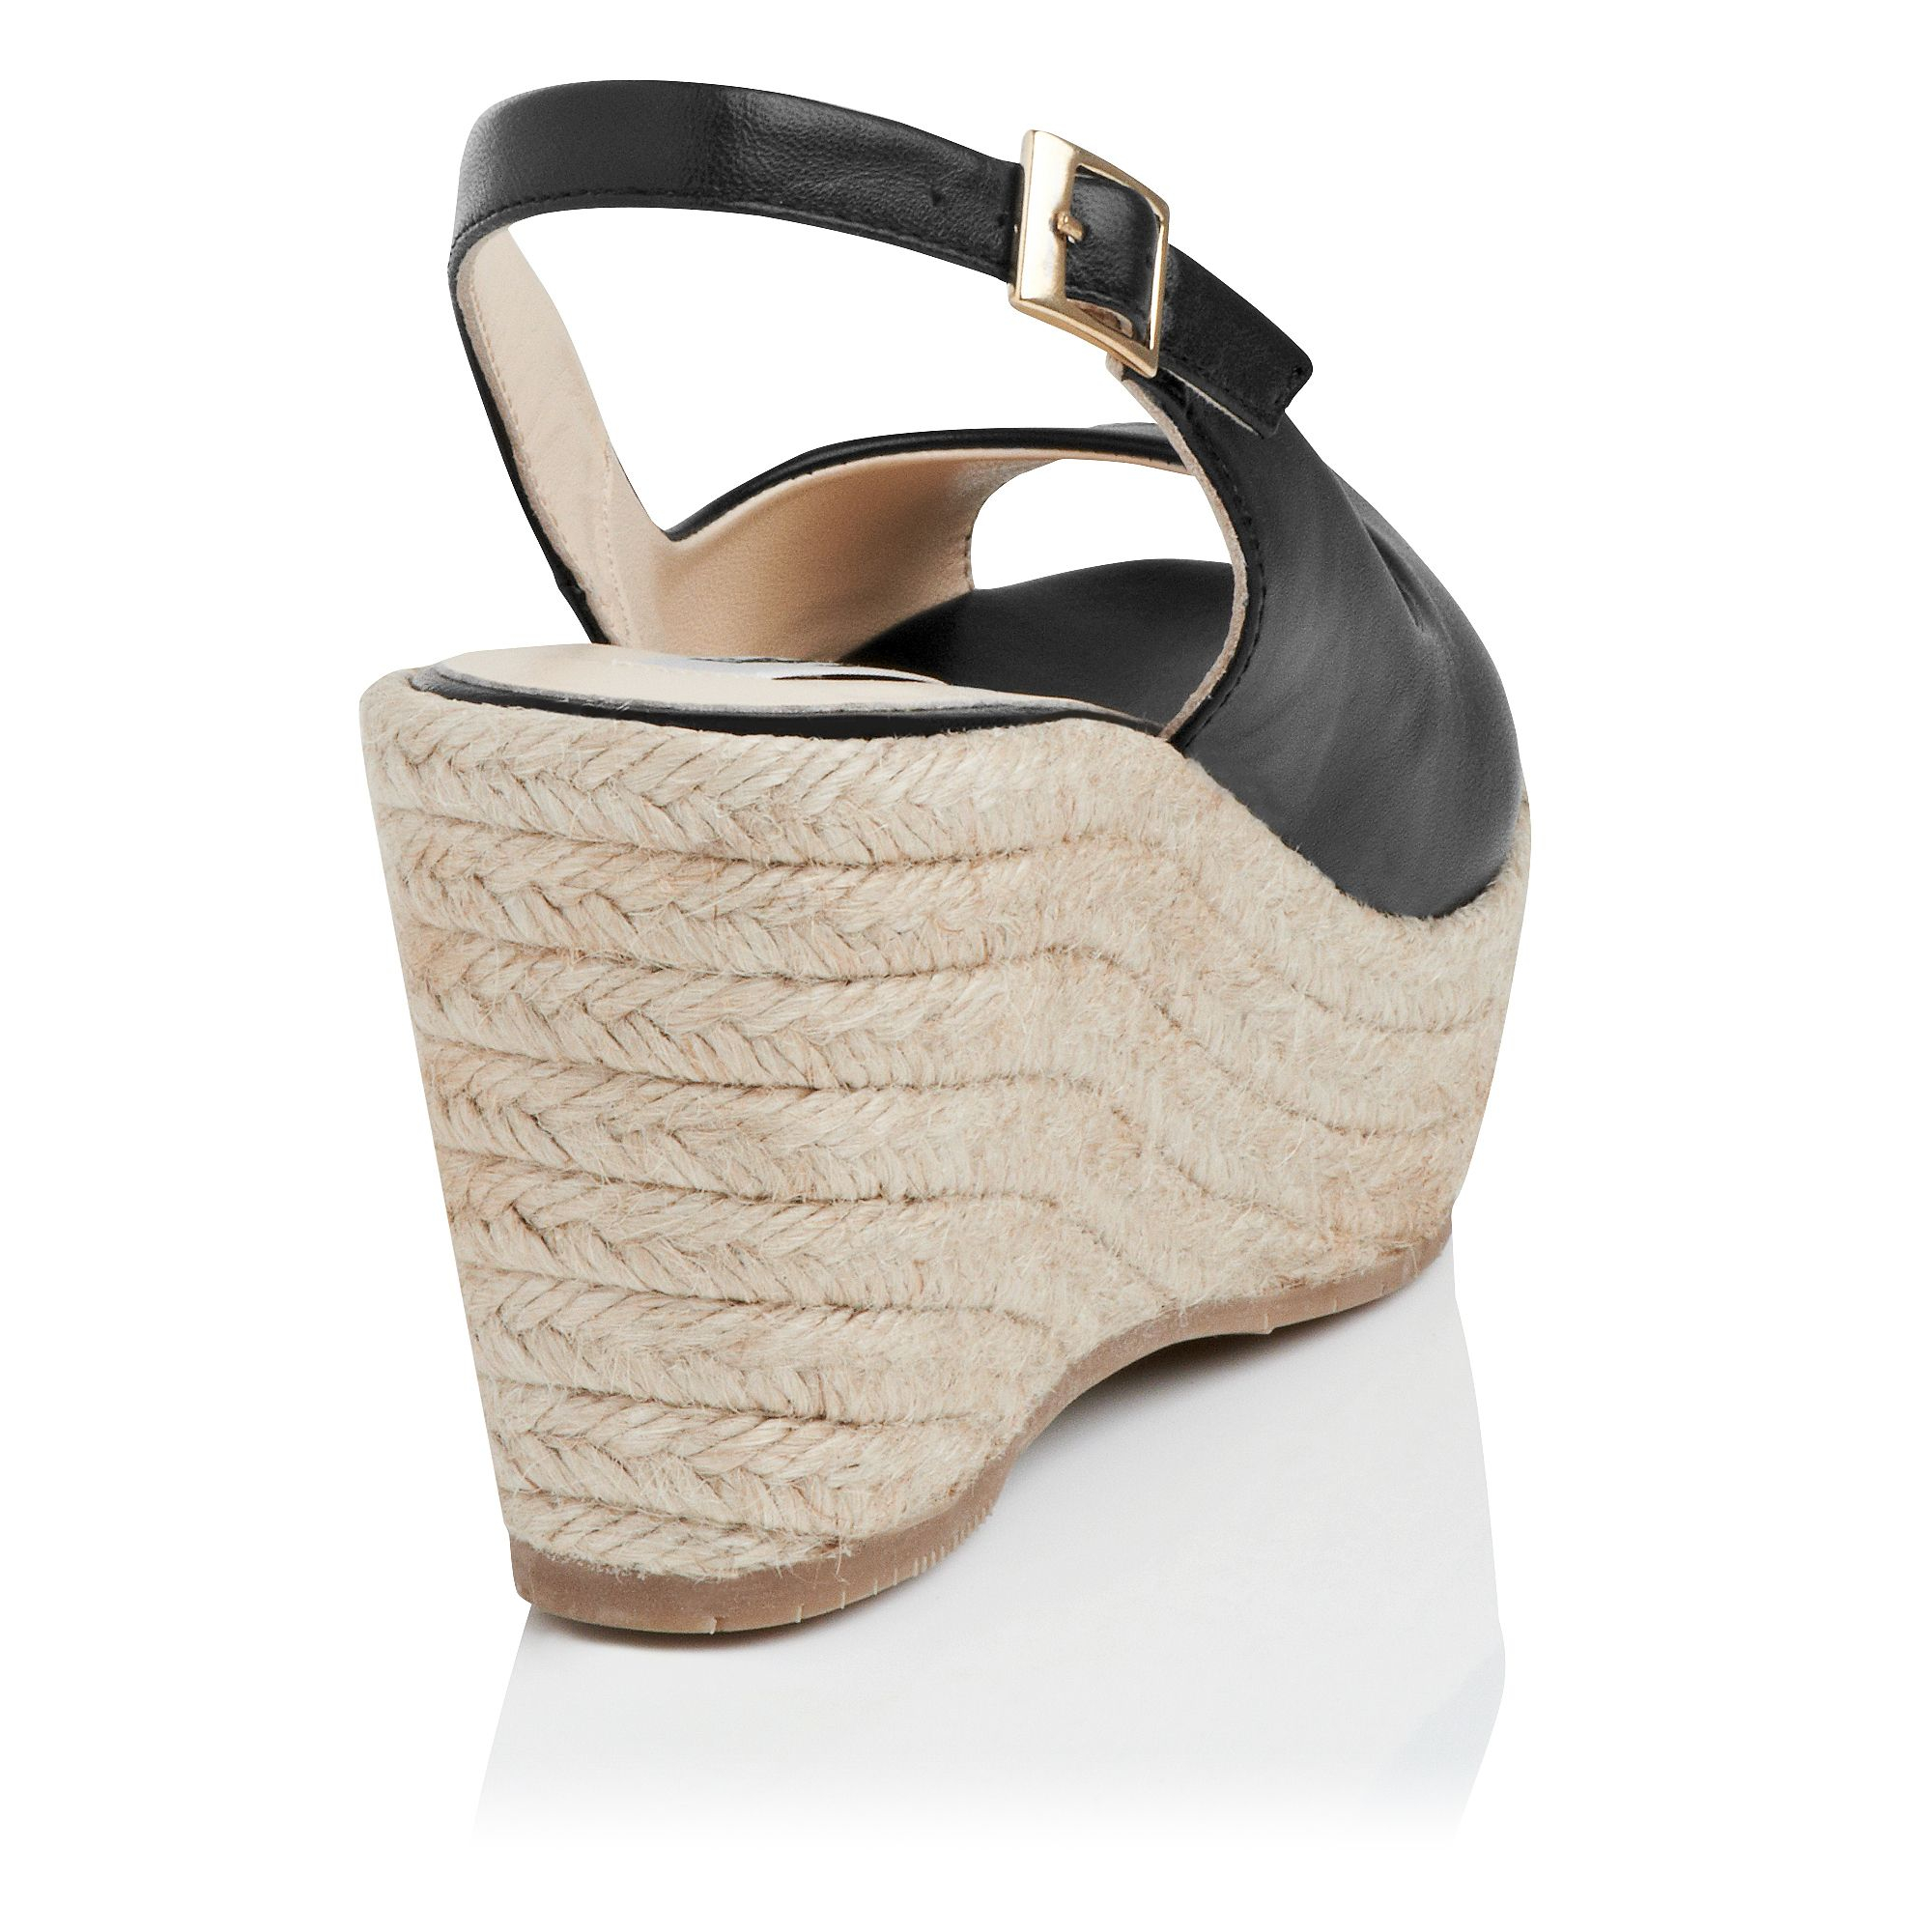 l k april leather open toe wedge shoes in black lyst